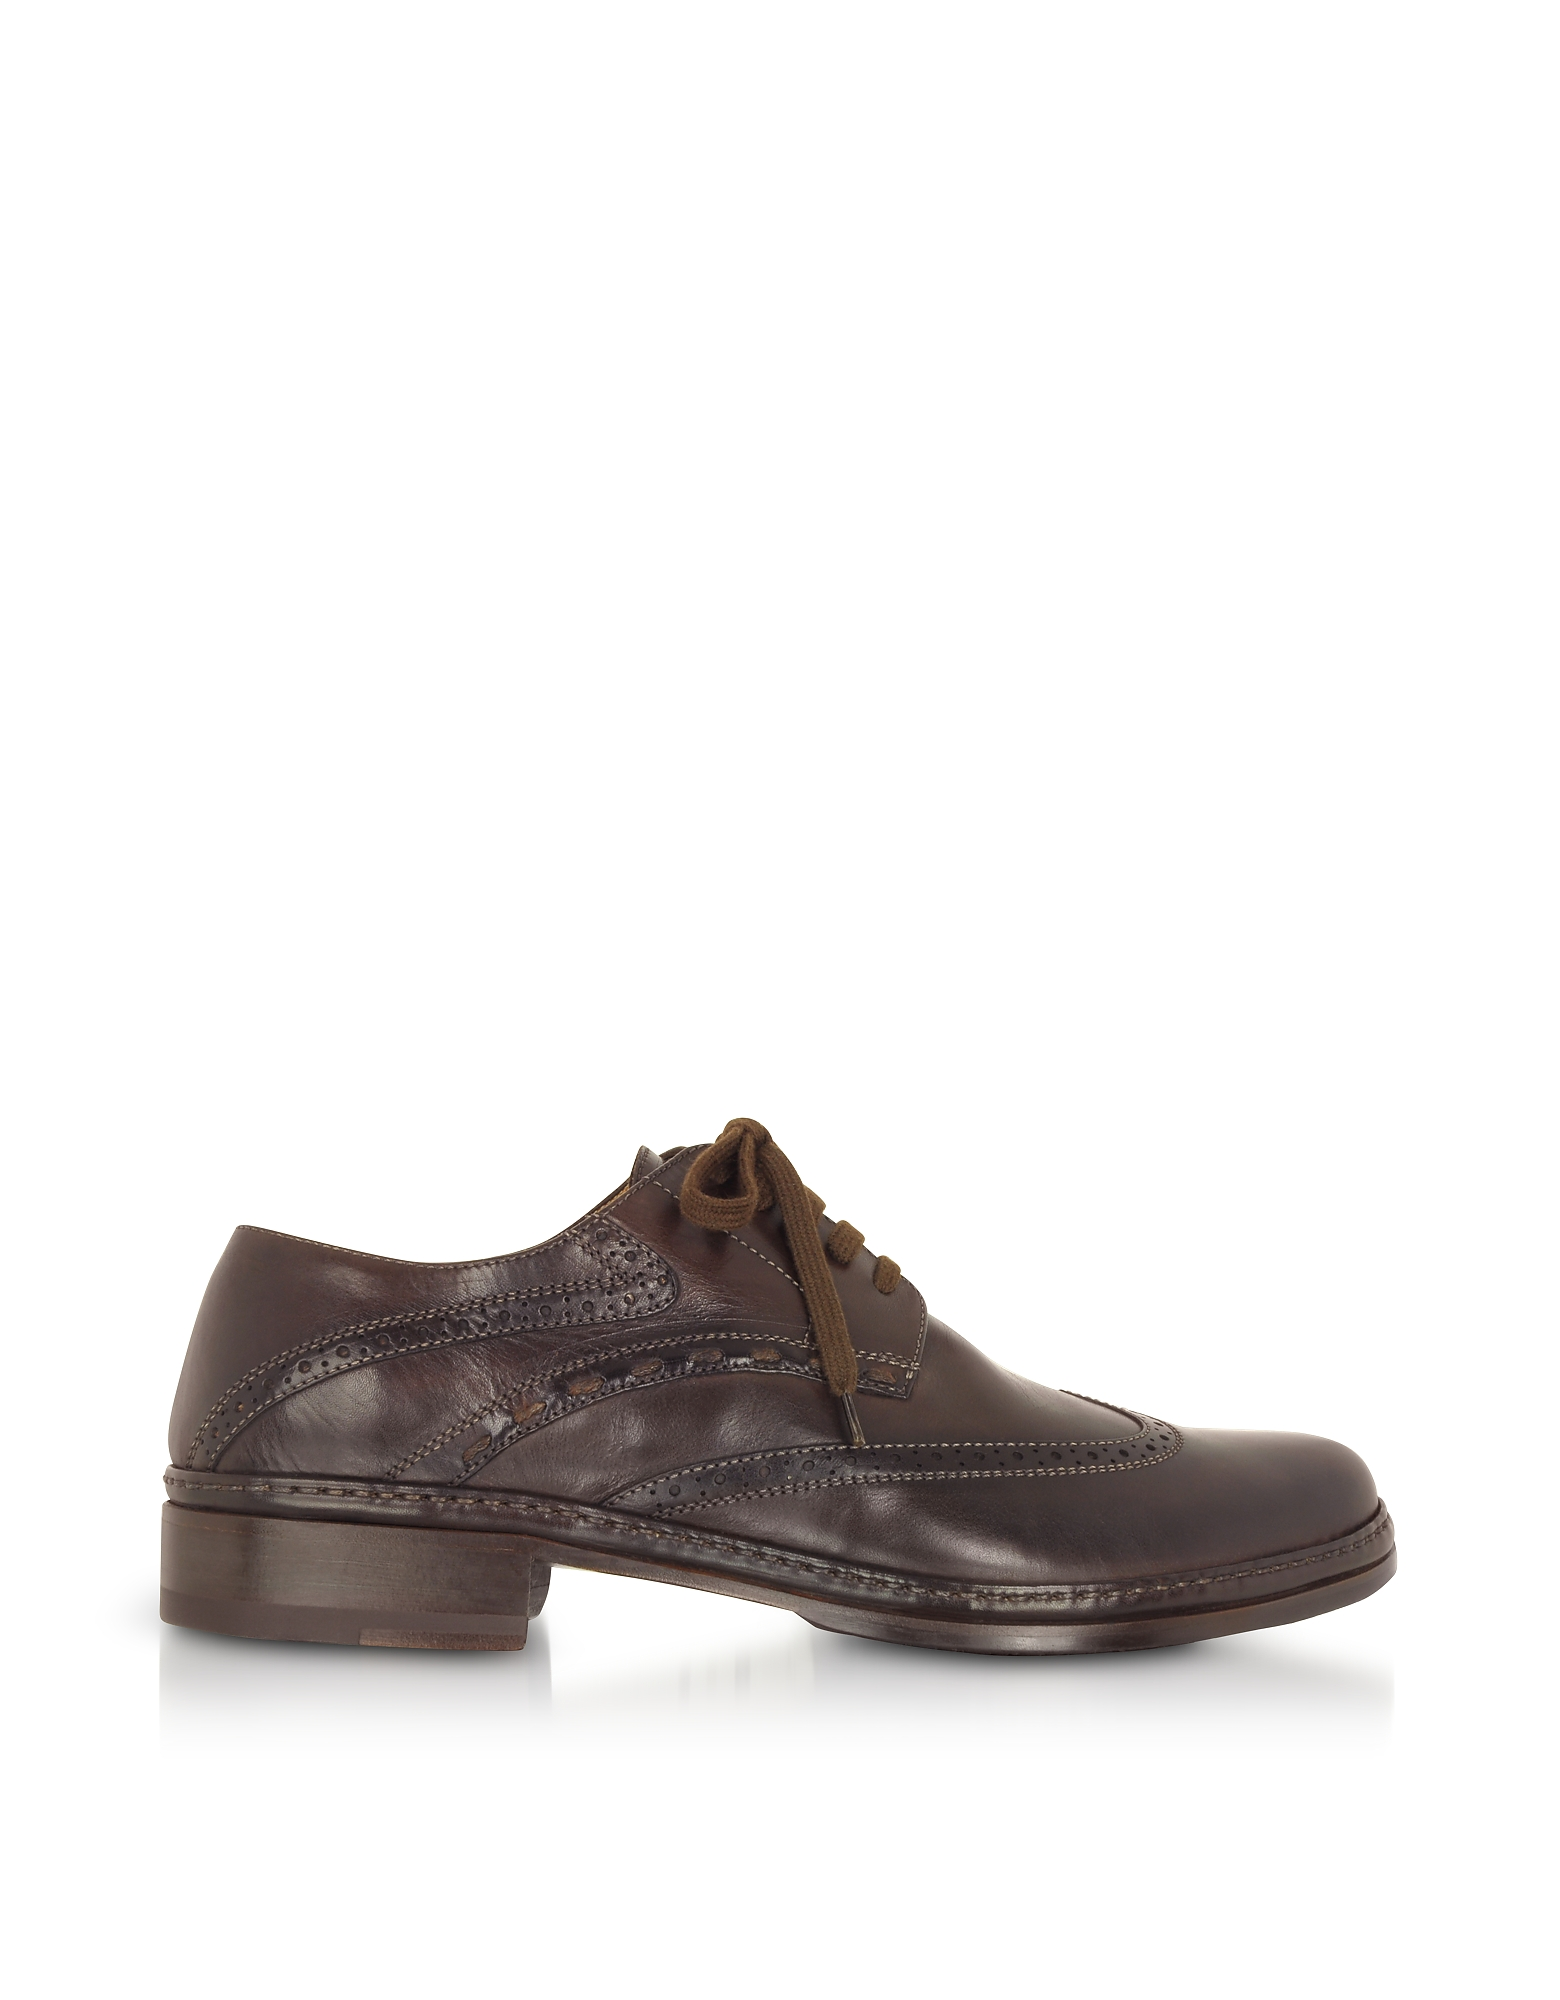 Pakerson Shoes, Dark Brown Handmade Italian Leather Wingtip Oxford Shoes